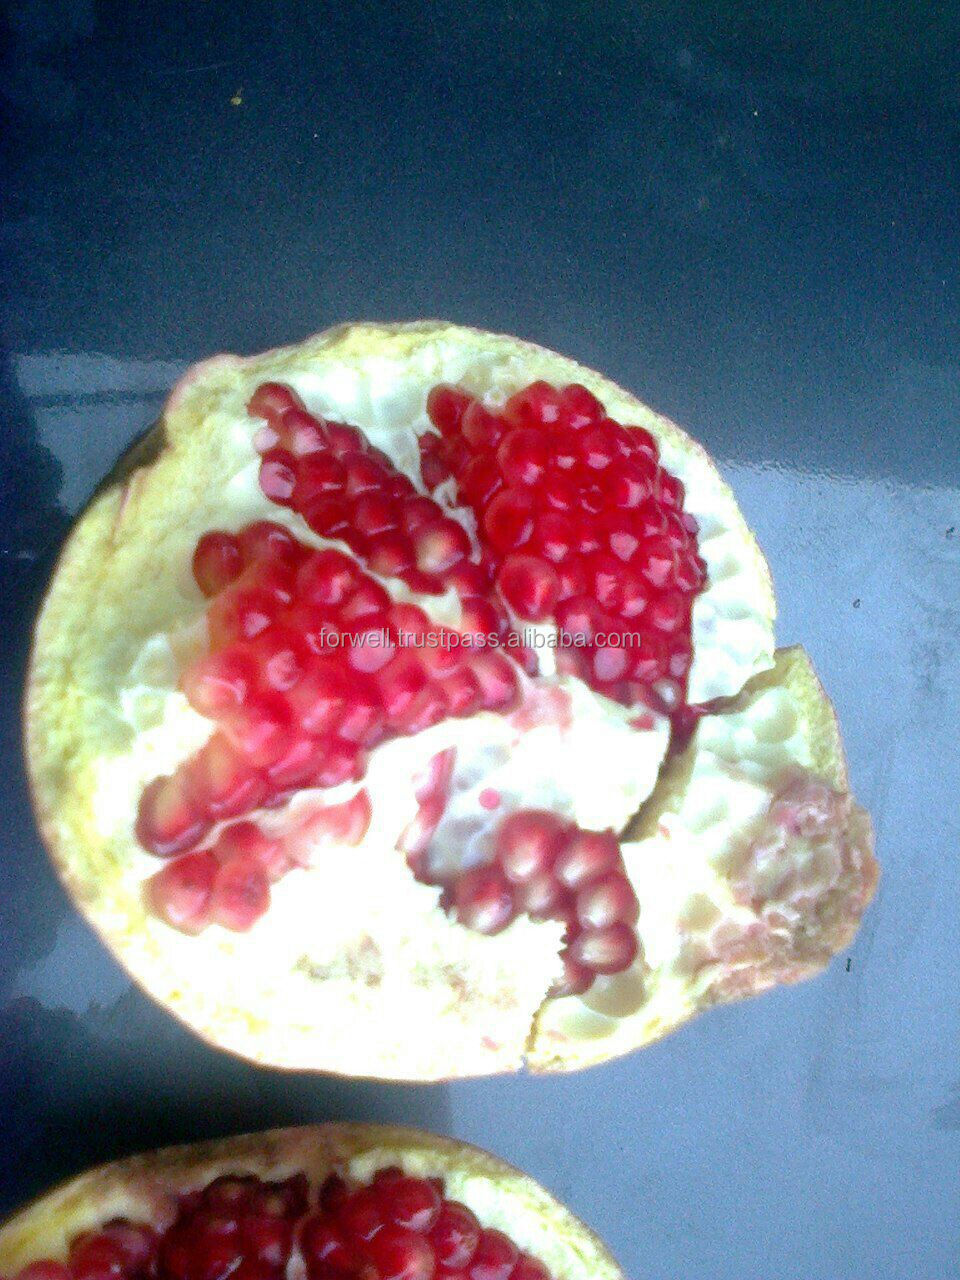 american Pomegranate specification : Hard Dark Red Color of Pomegranate crop